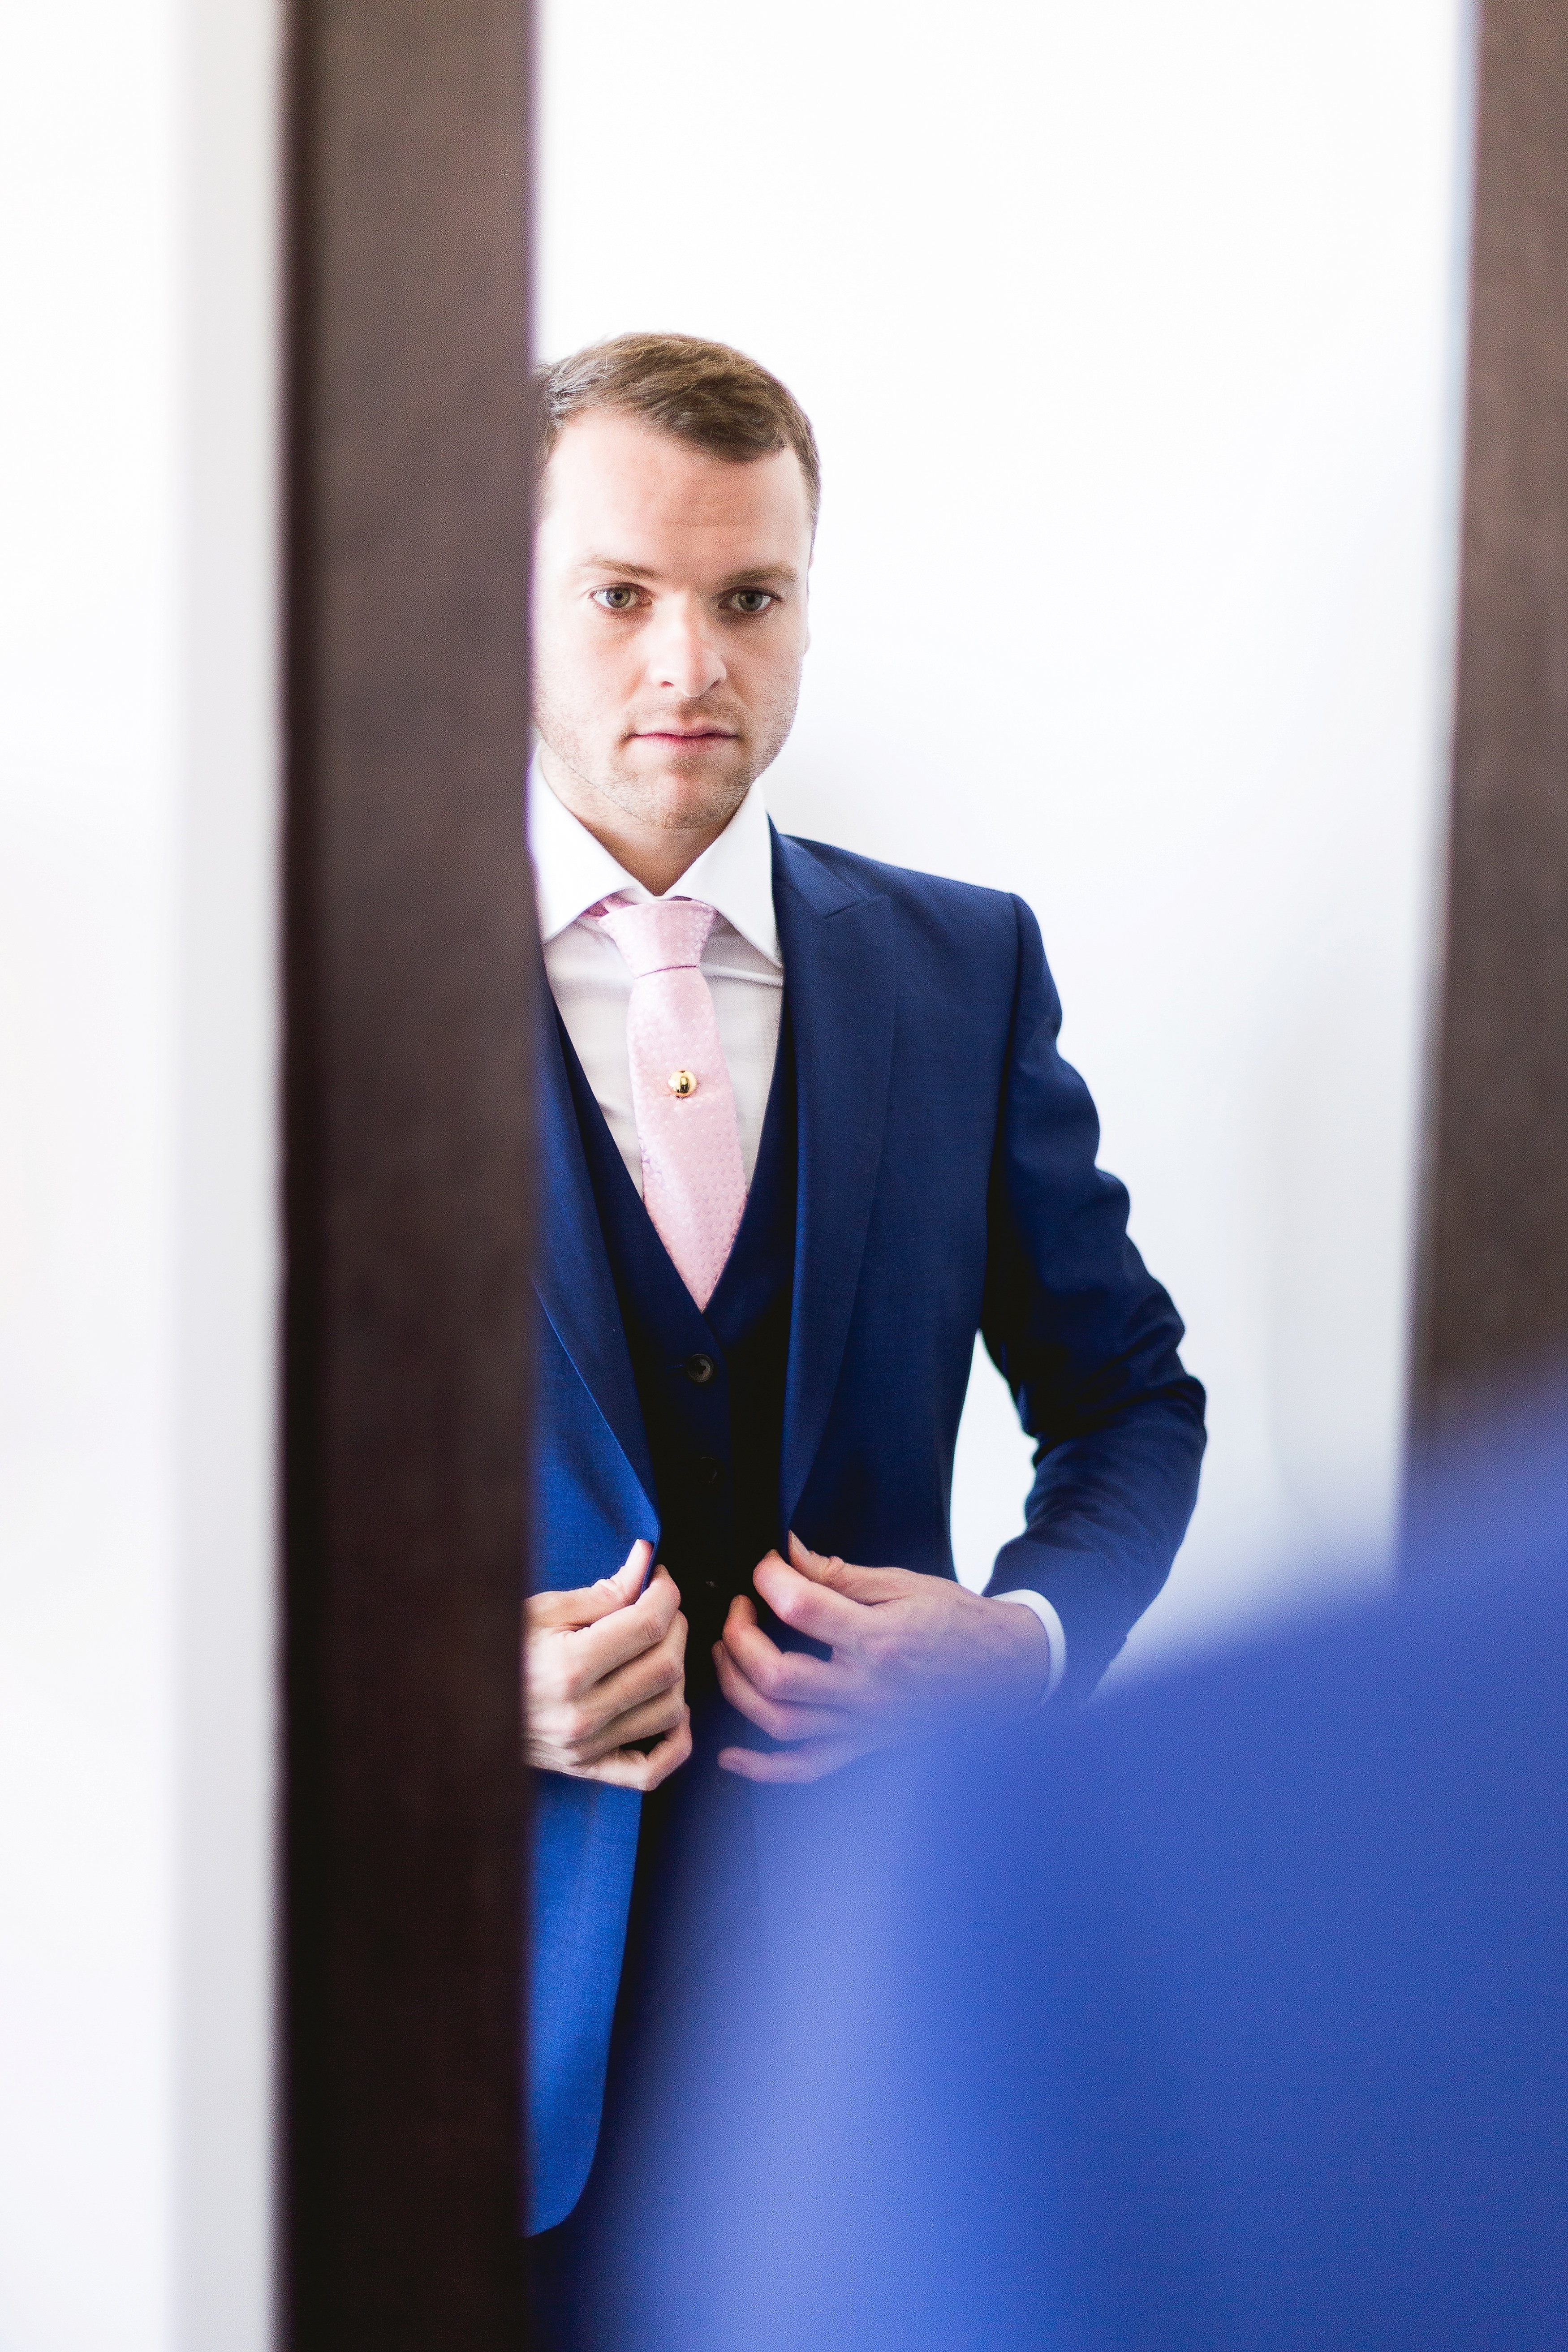 Groom Prep photos in london wedding photography by beatrici photography